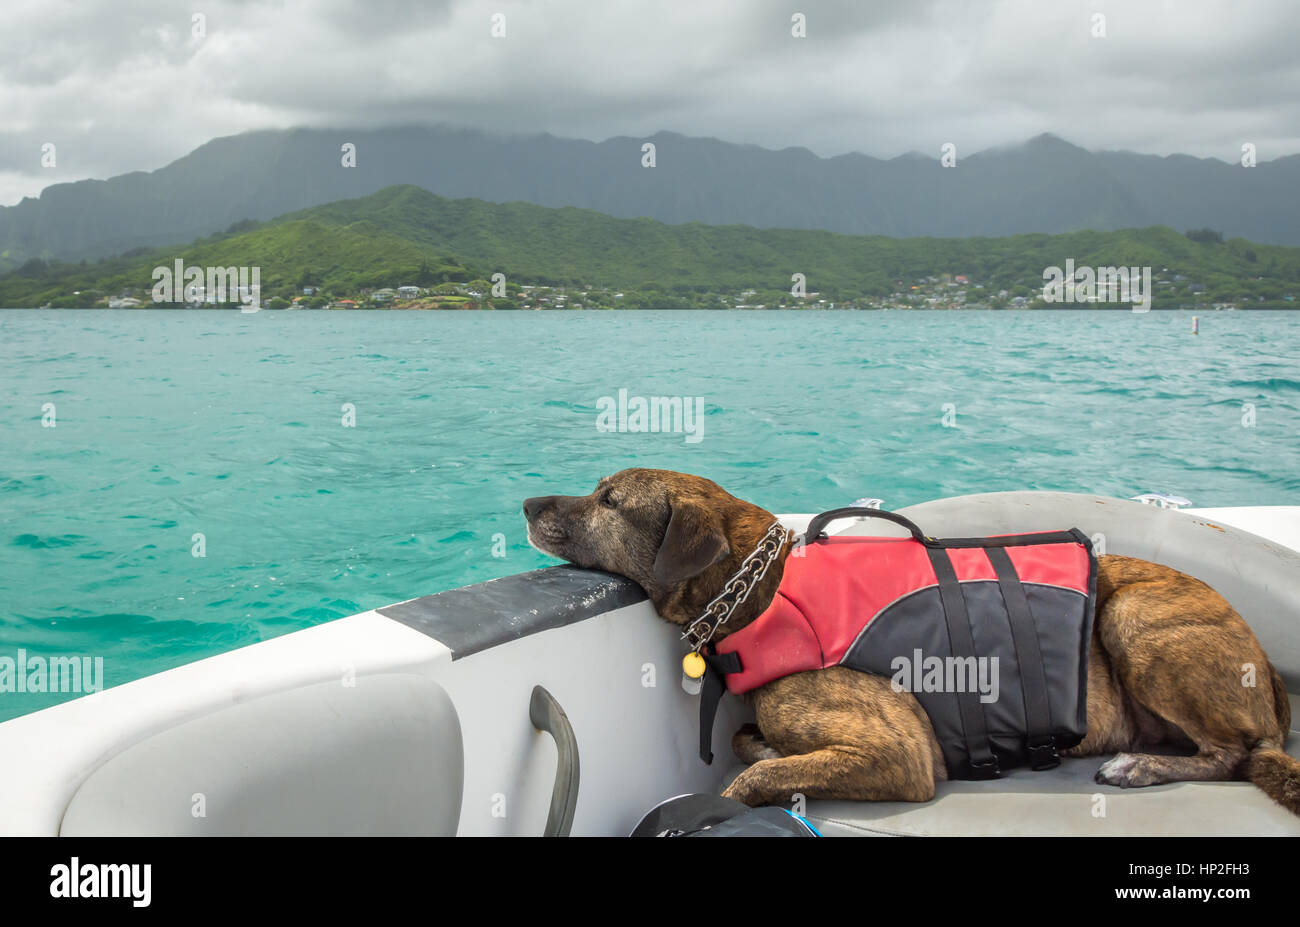 A lazy dog on a boat, wearing a life jacket and cruising along the emerald green ocean. - Stock Image